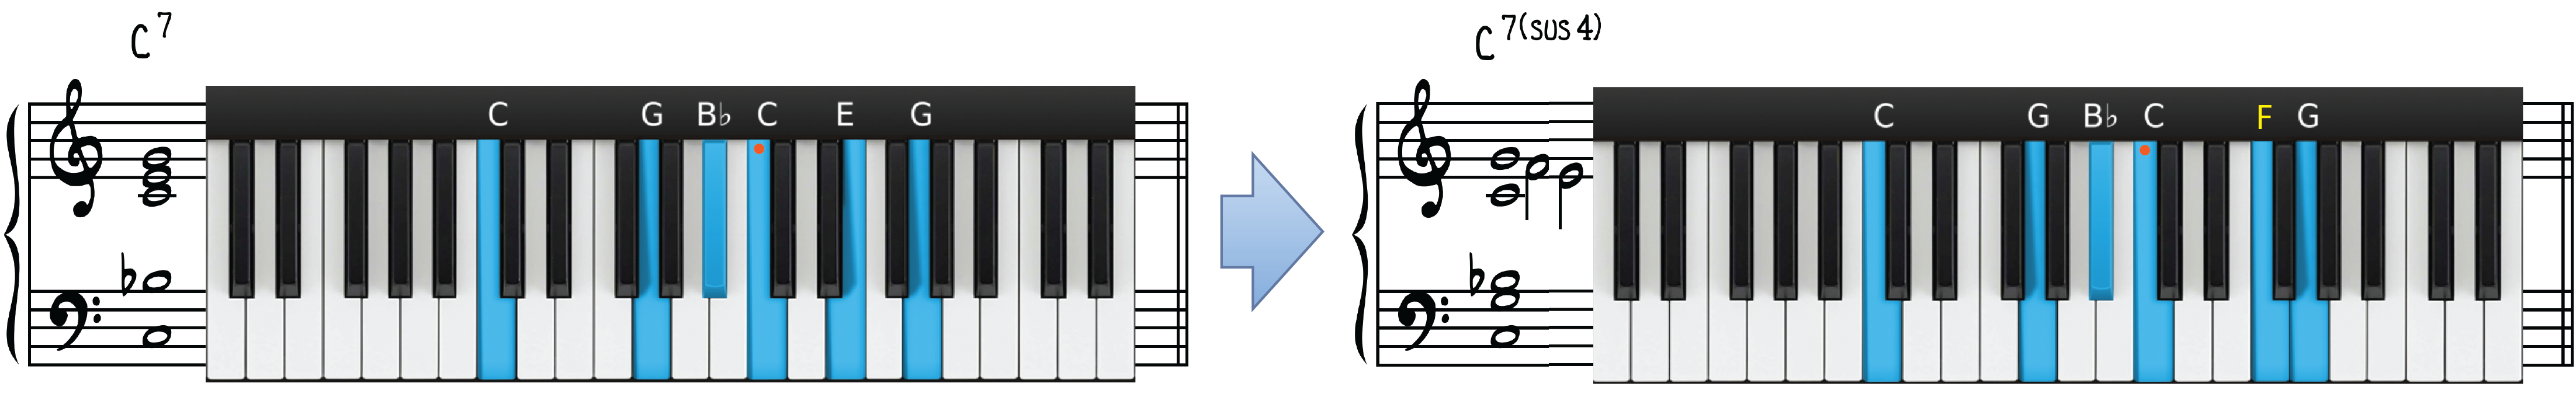 """C7 Contemporary Piano Chord Transformation for """"What a Wonderful World"""""""